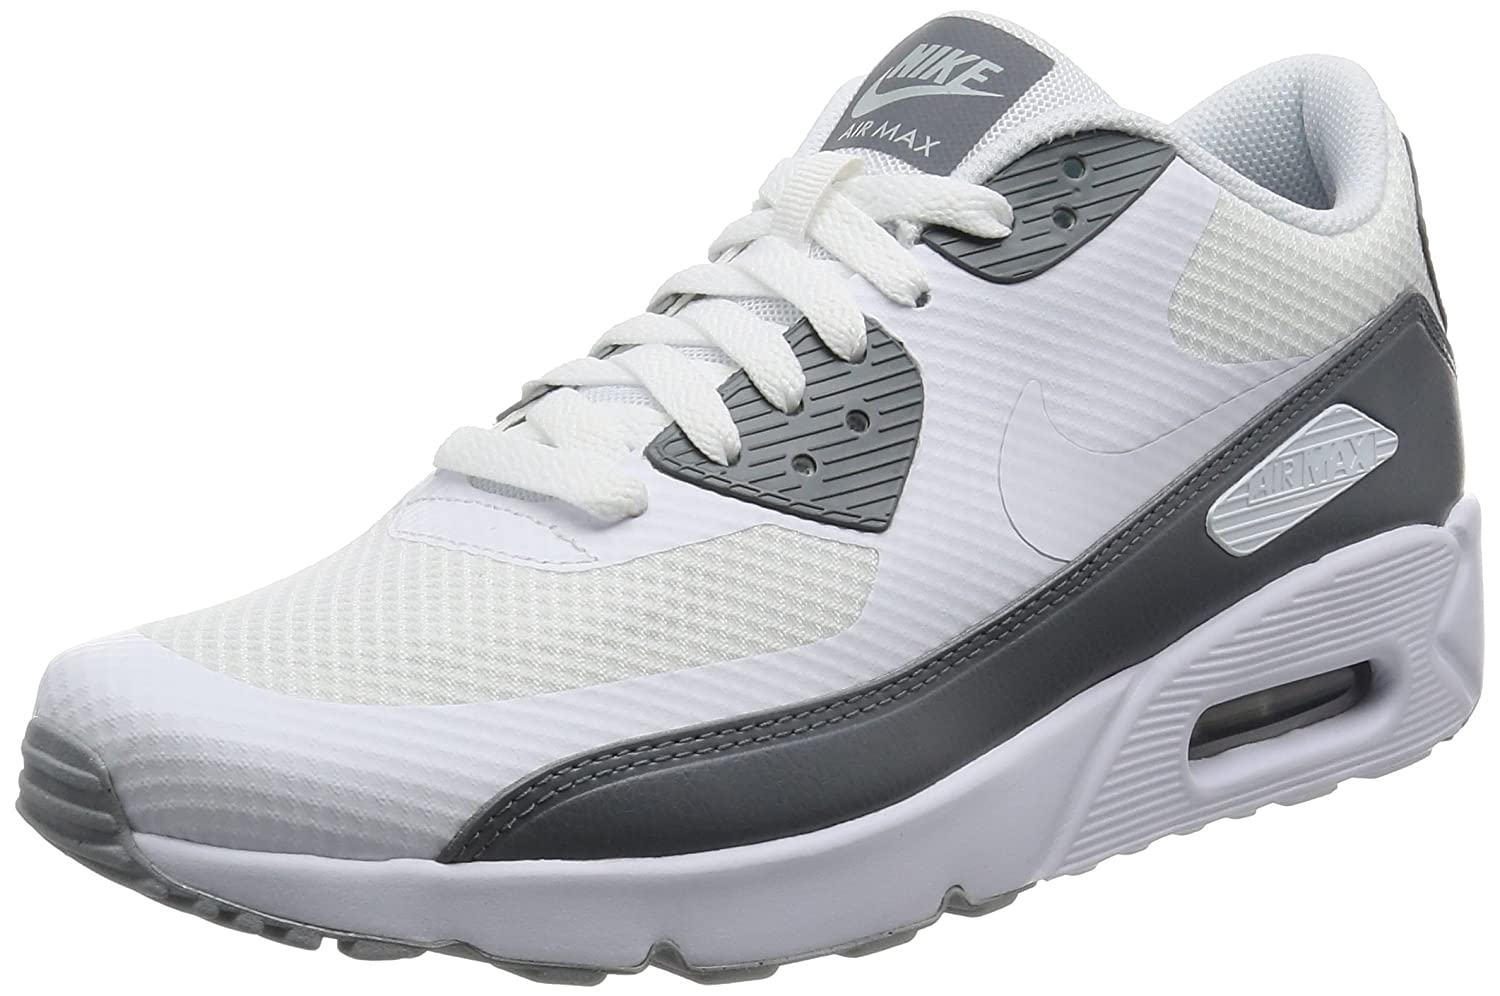 the best attitude 0e8e4 07b7c NIKE Men's Air Max 90 Ultra 2.0 Essential White/White Cool Grey Running  Shoe 10 Men US